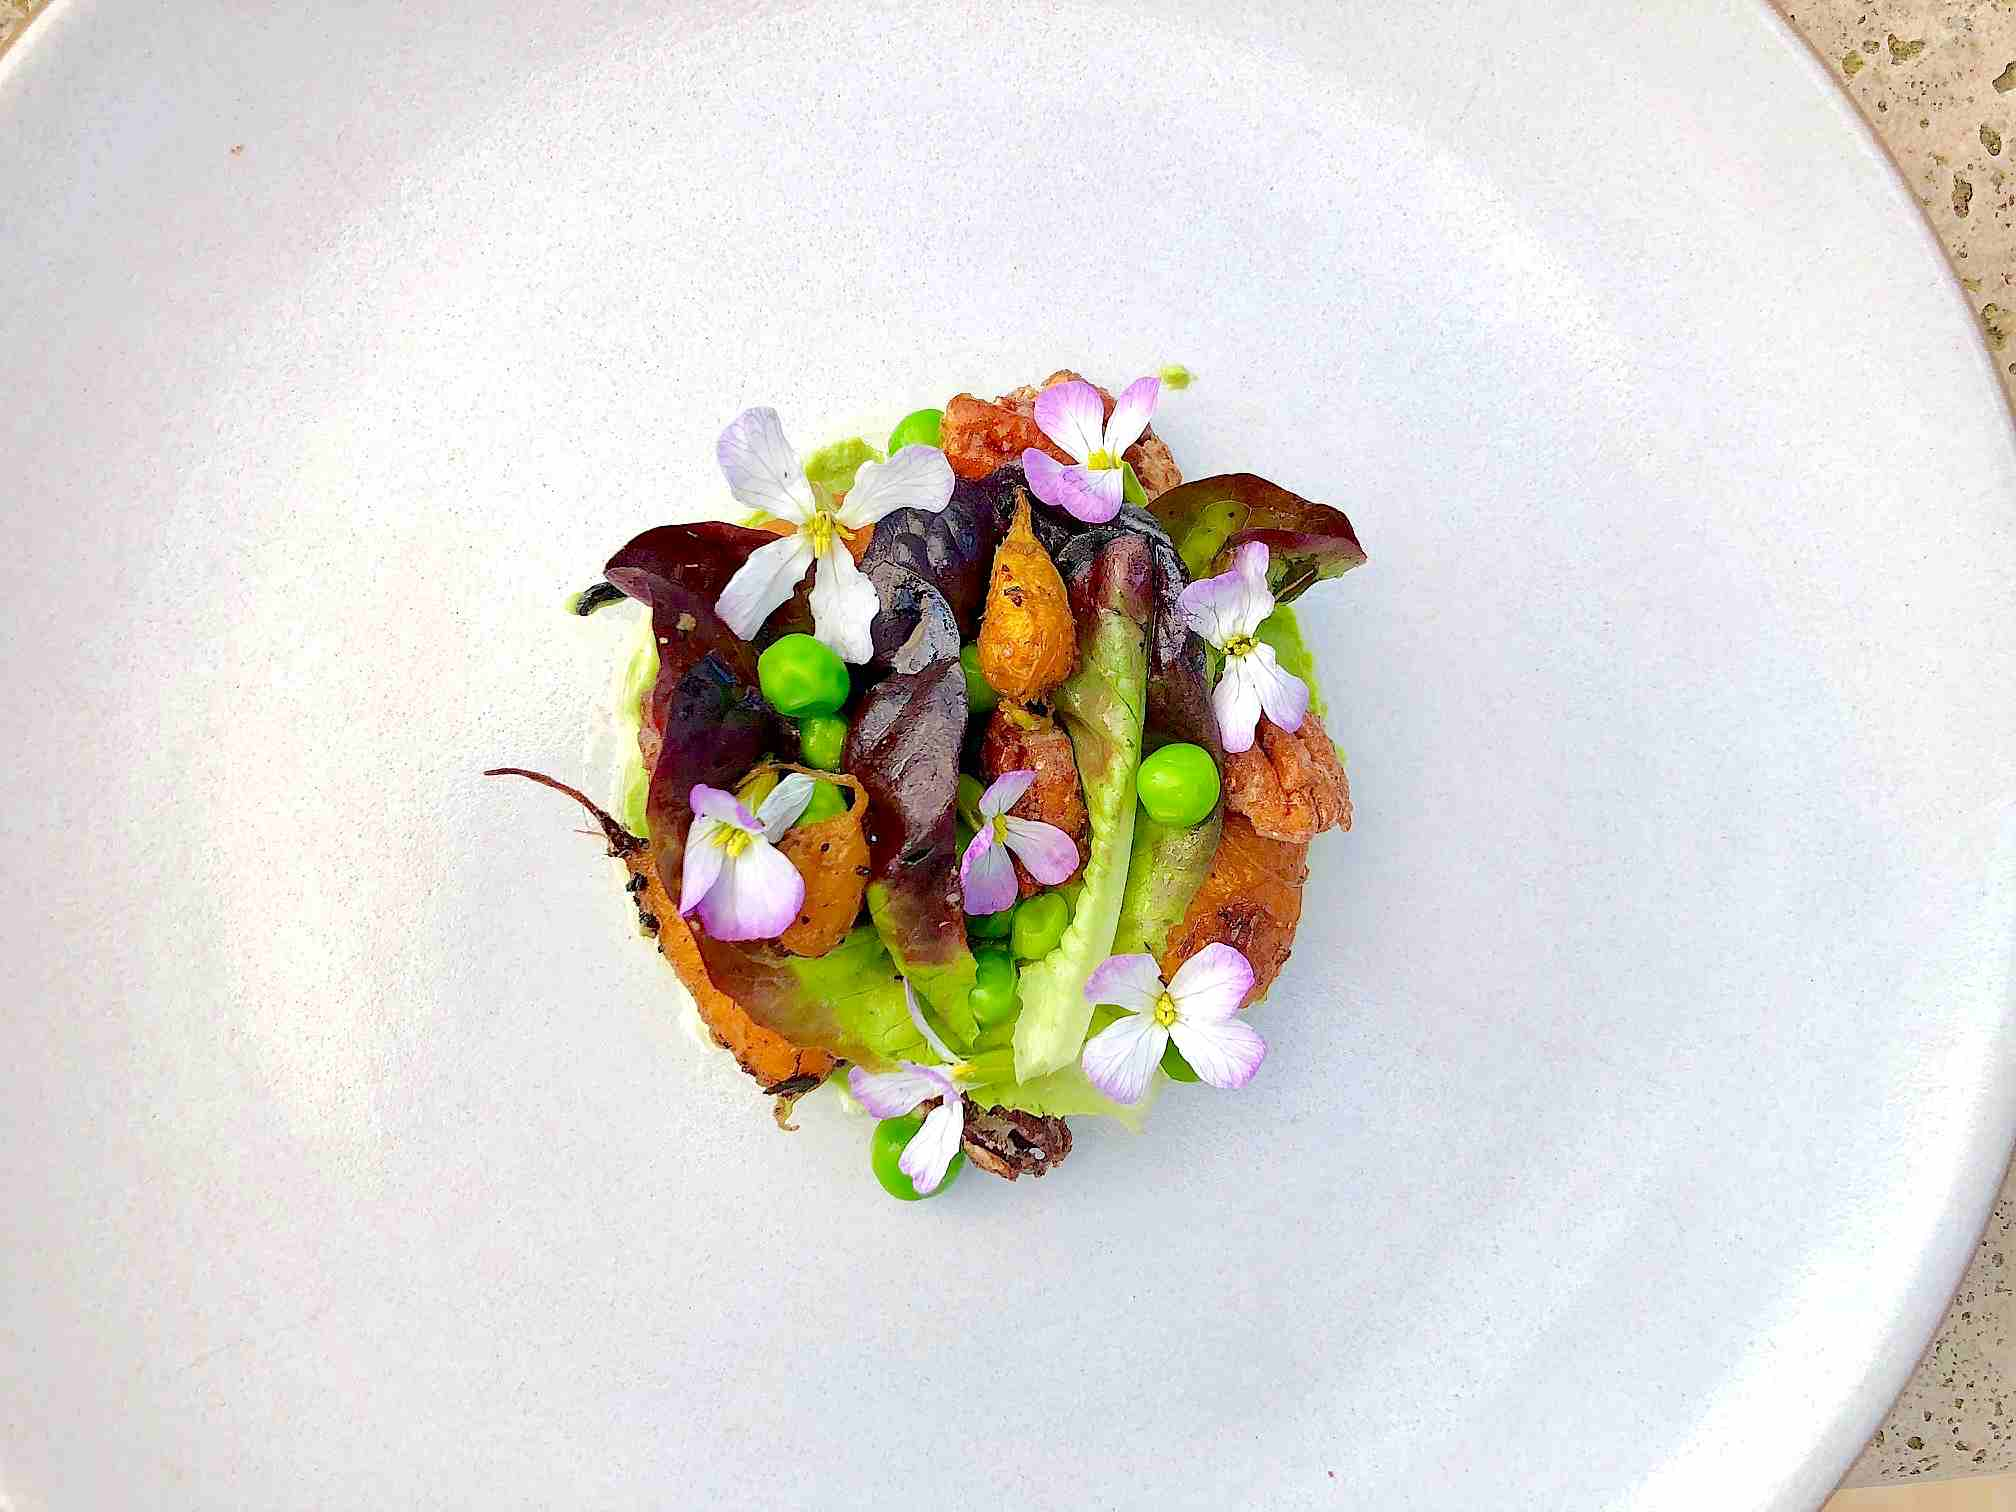 Spring Salad with Peas and Carrots